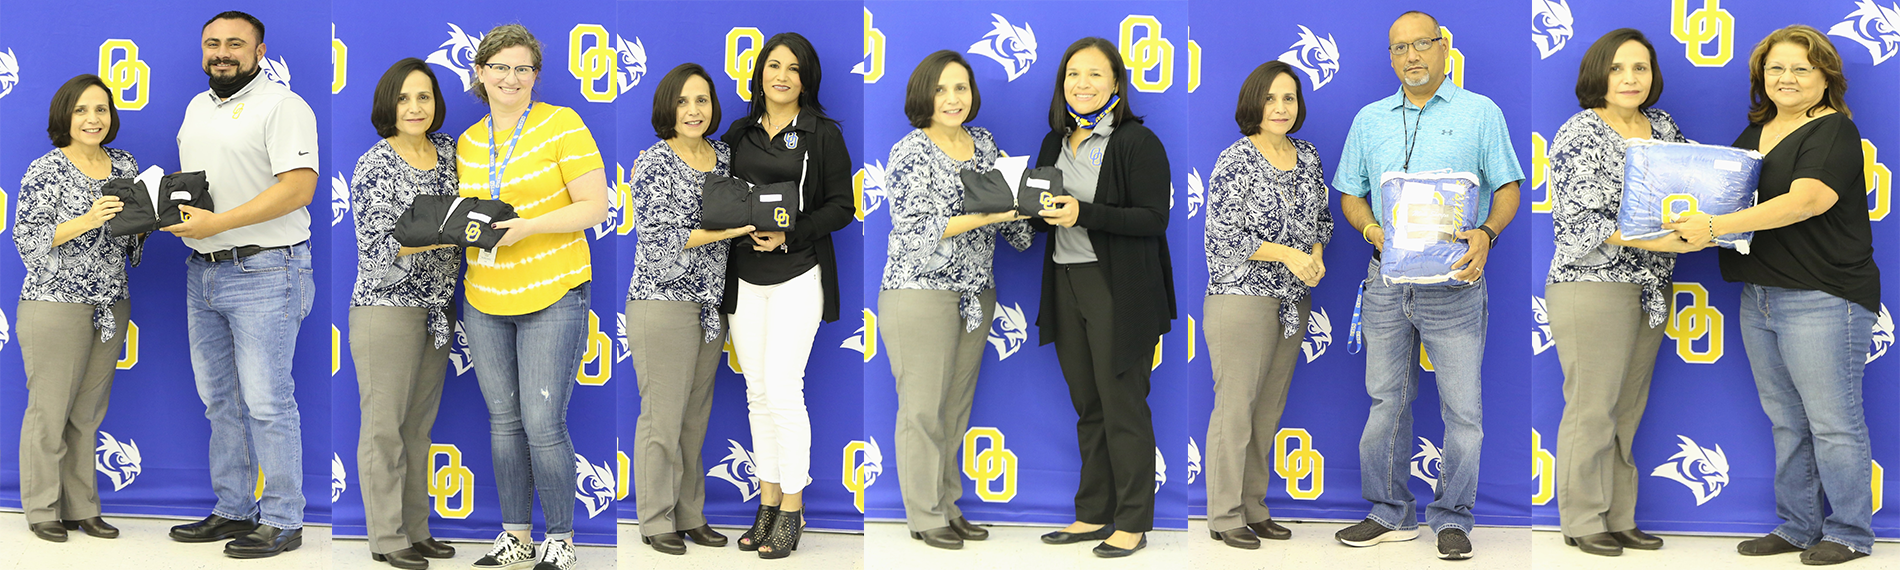 Recipients of service awards OHS-OJH